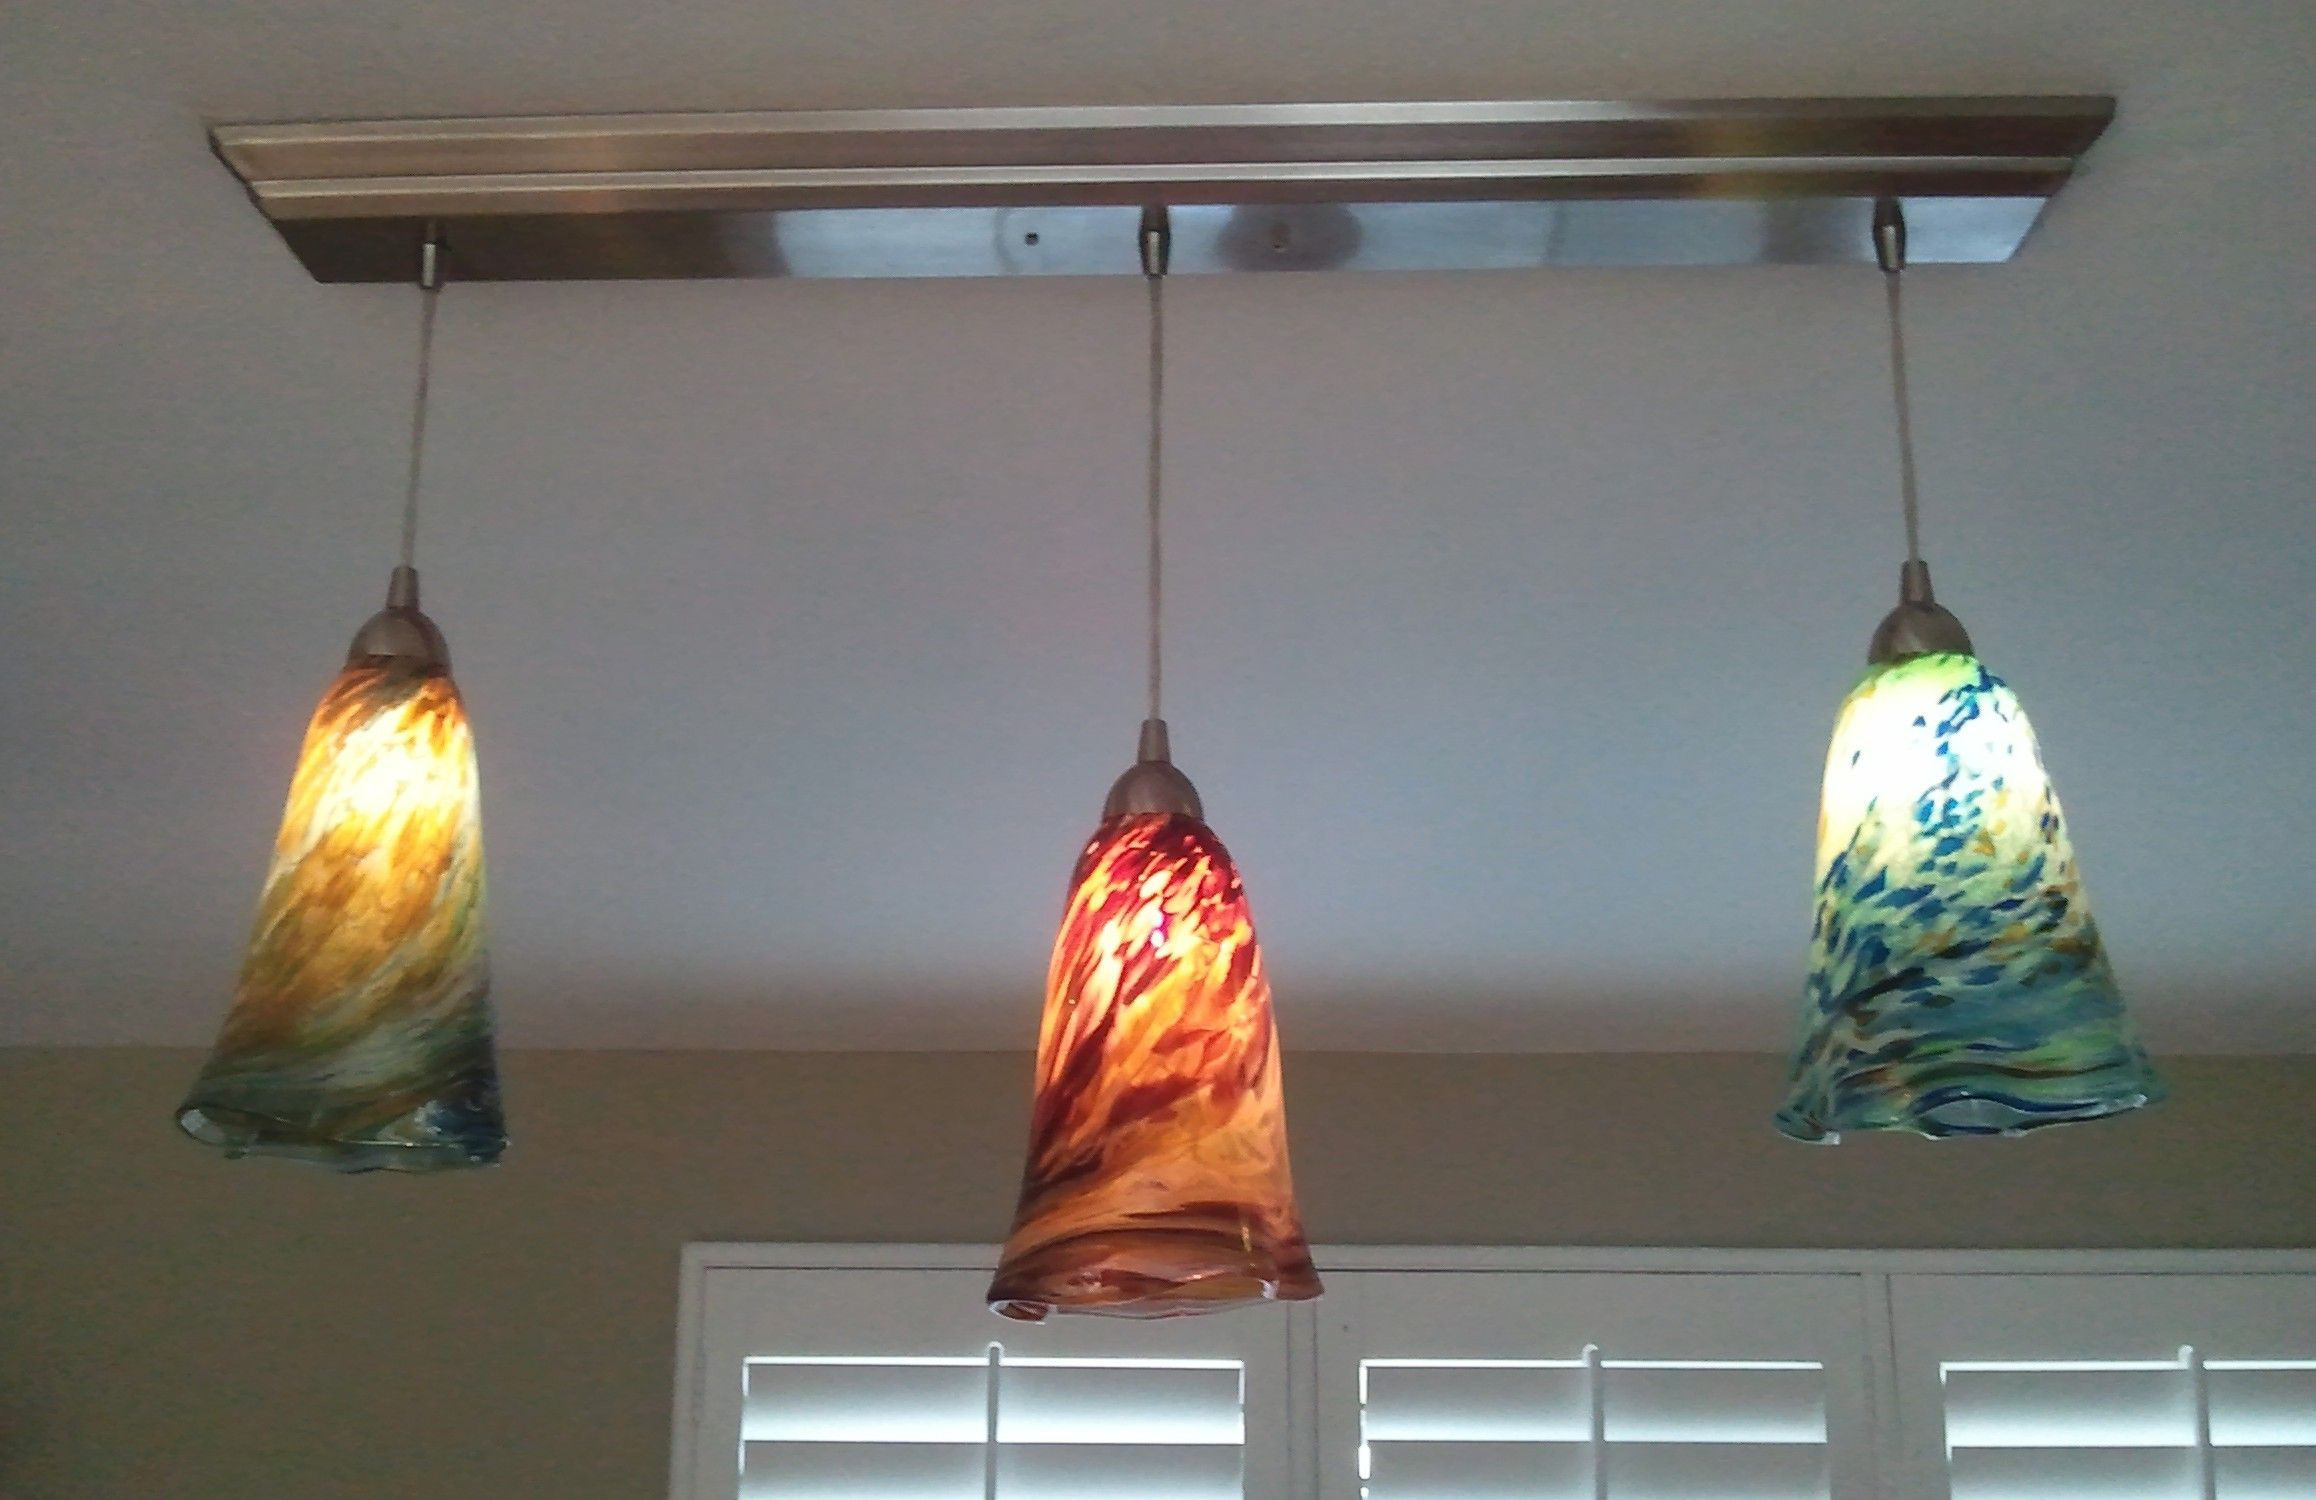 Replacement lamp shades for pendant lights interesting lamps replacement lamp shades for pendant lights aloadofball Choice Image